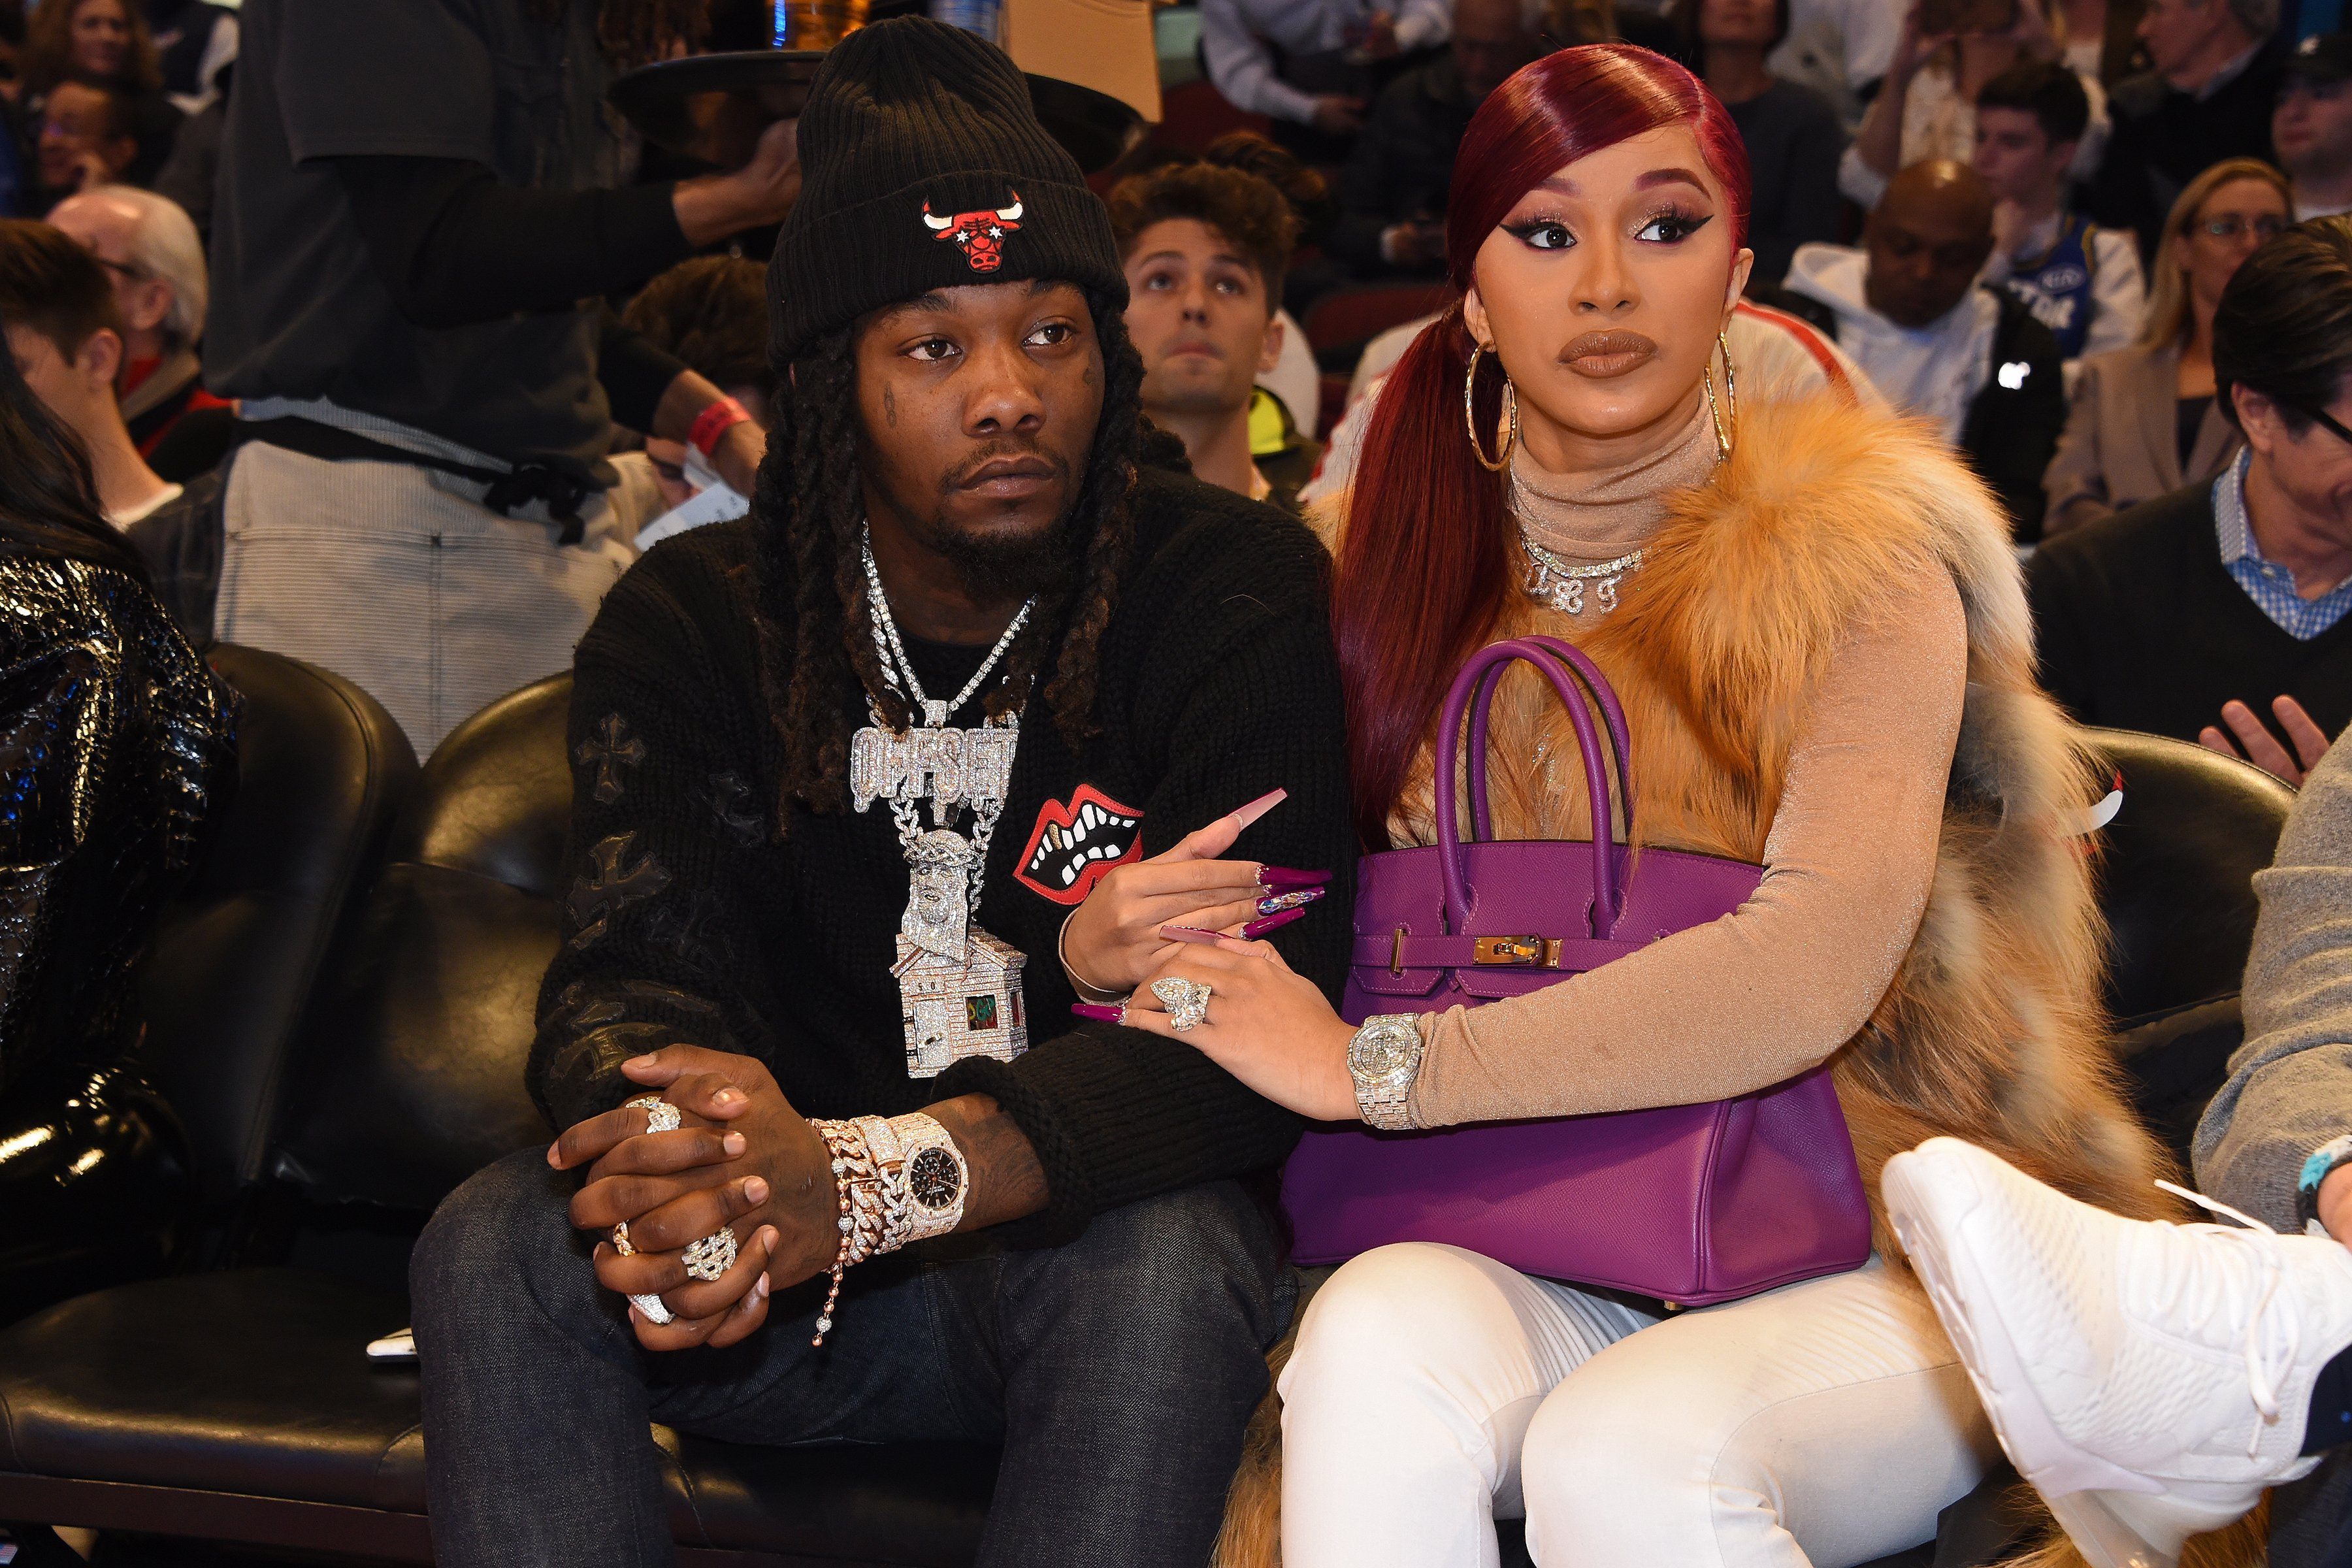 Offset and Cardi B at the NBA All-Star Weekend on February 16, 2020 at United Center in Chicago, Illinois.  Source: Getty Images